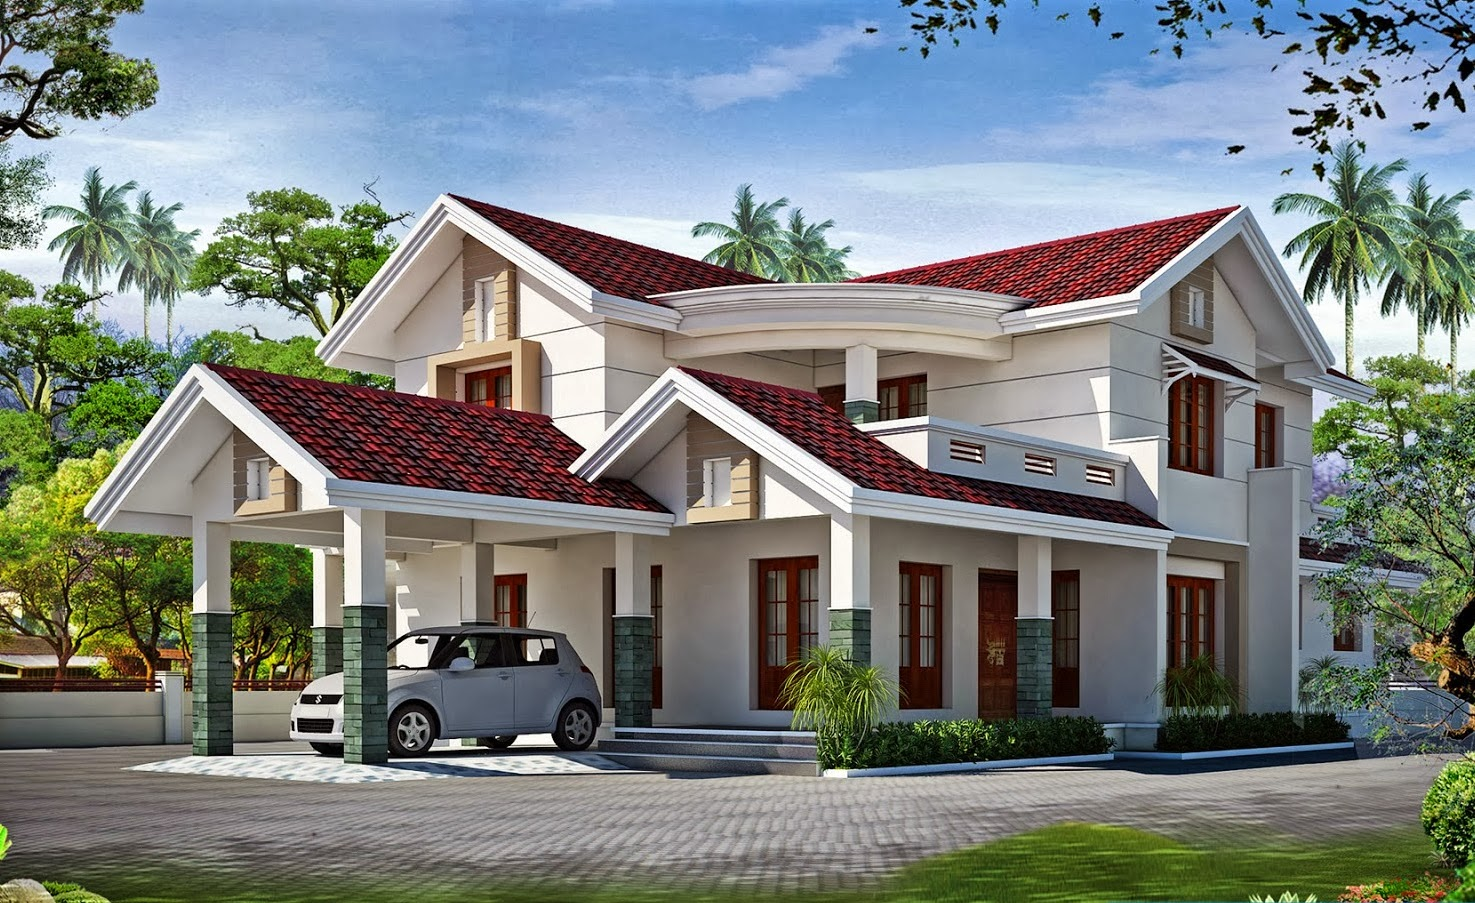 Erode Home building services on goa house design, tamilnadu house design, punjab house design,